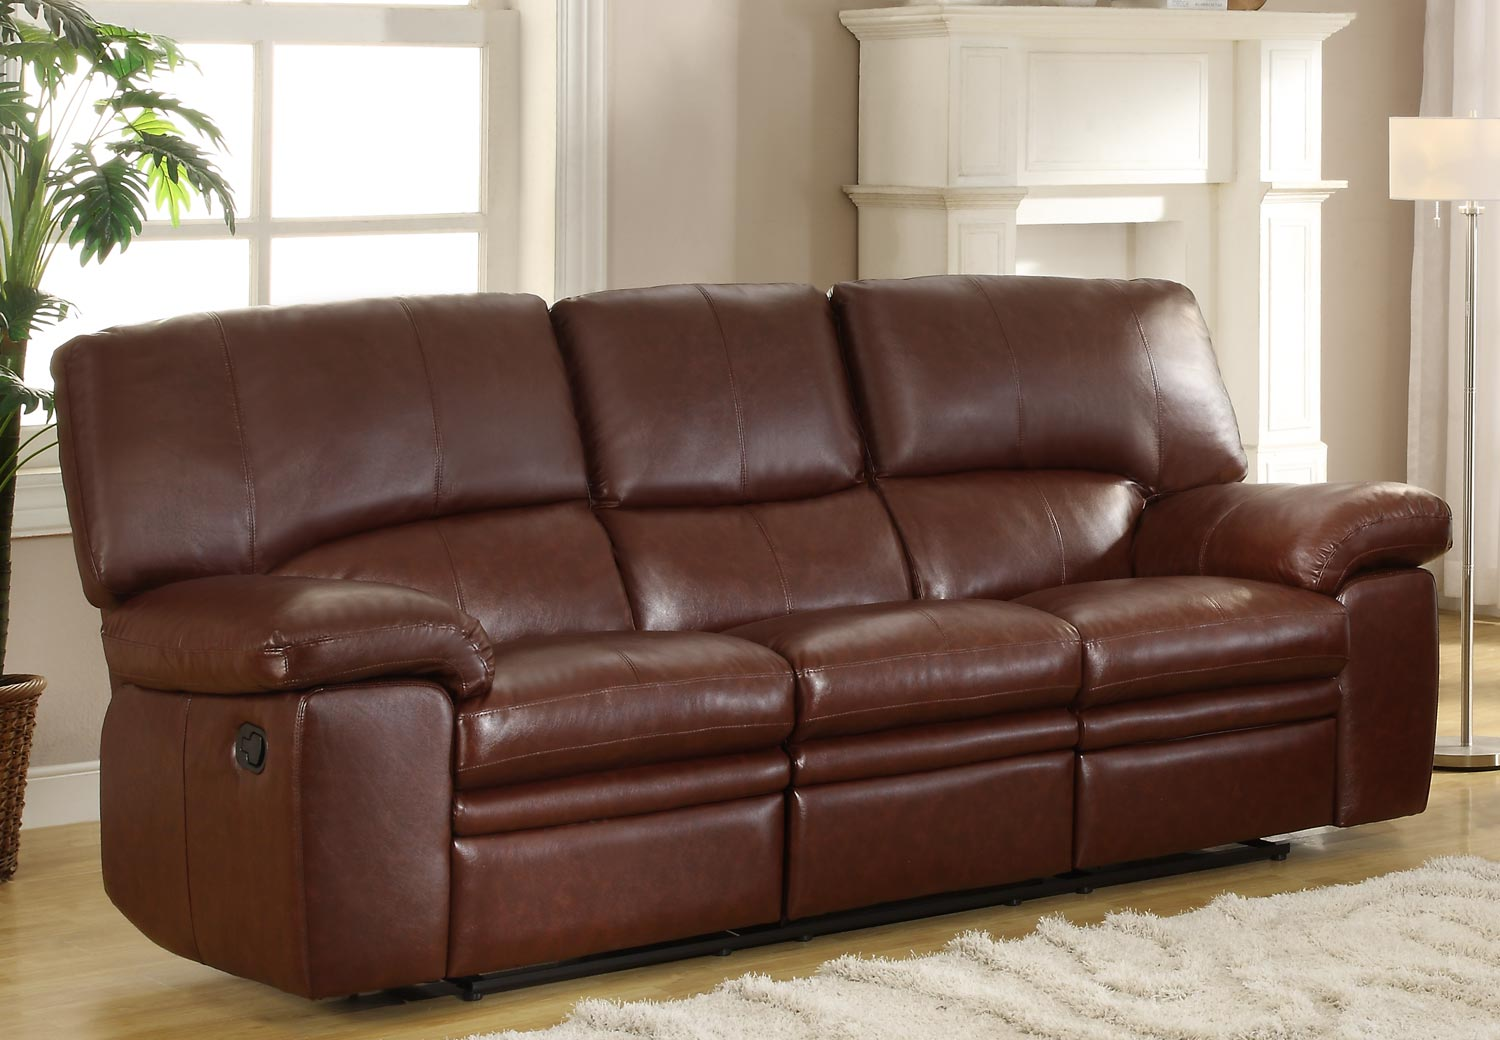 Homelegance Kendrick Double Recliner Sofa - Brown - Bonded Leather Match & Homelegance Kendrick Double Recliner Sofa - Brown - Bonded Leather ... islam-shia.org